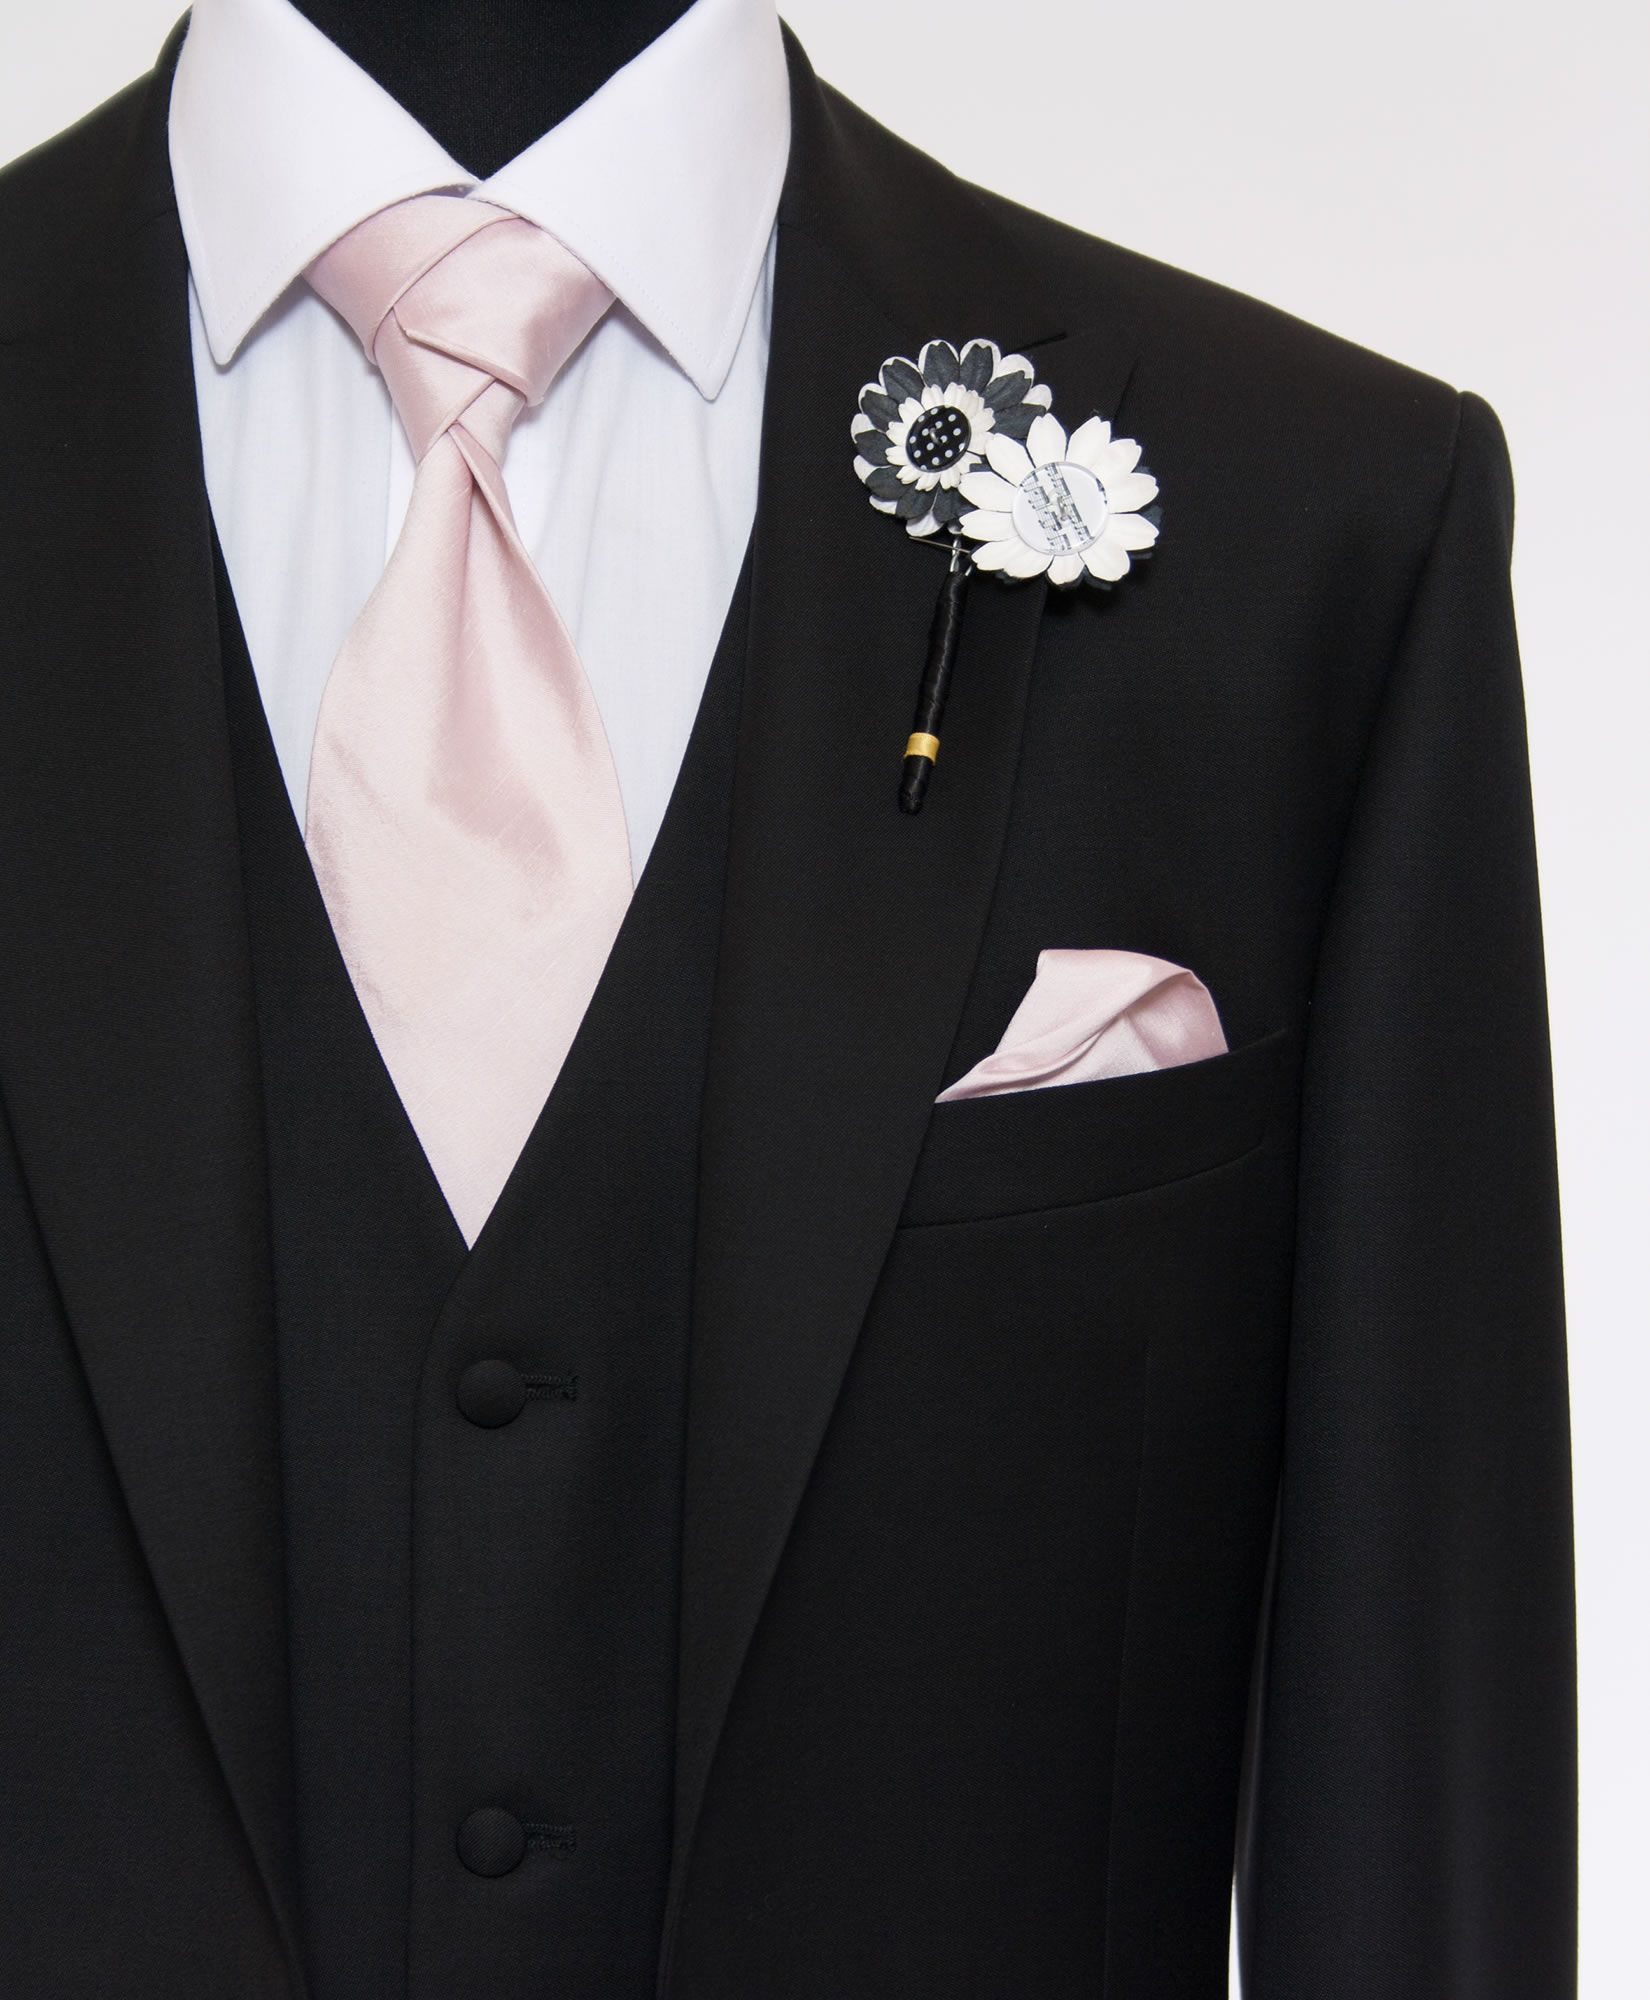 pink tie with black suit - Google Search | Leah Wedding ...